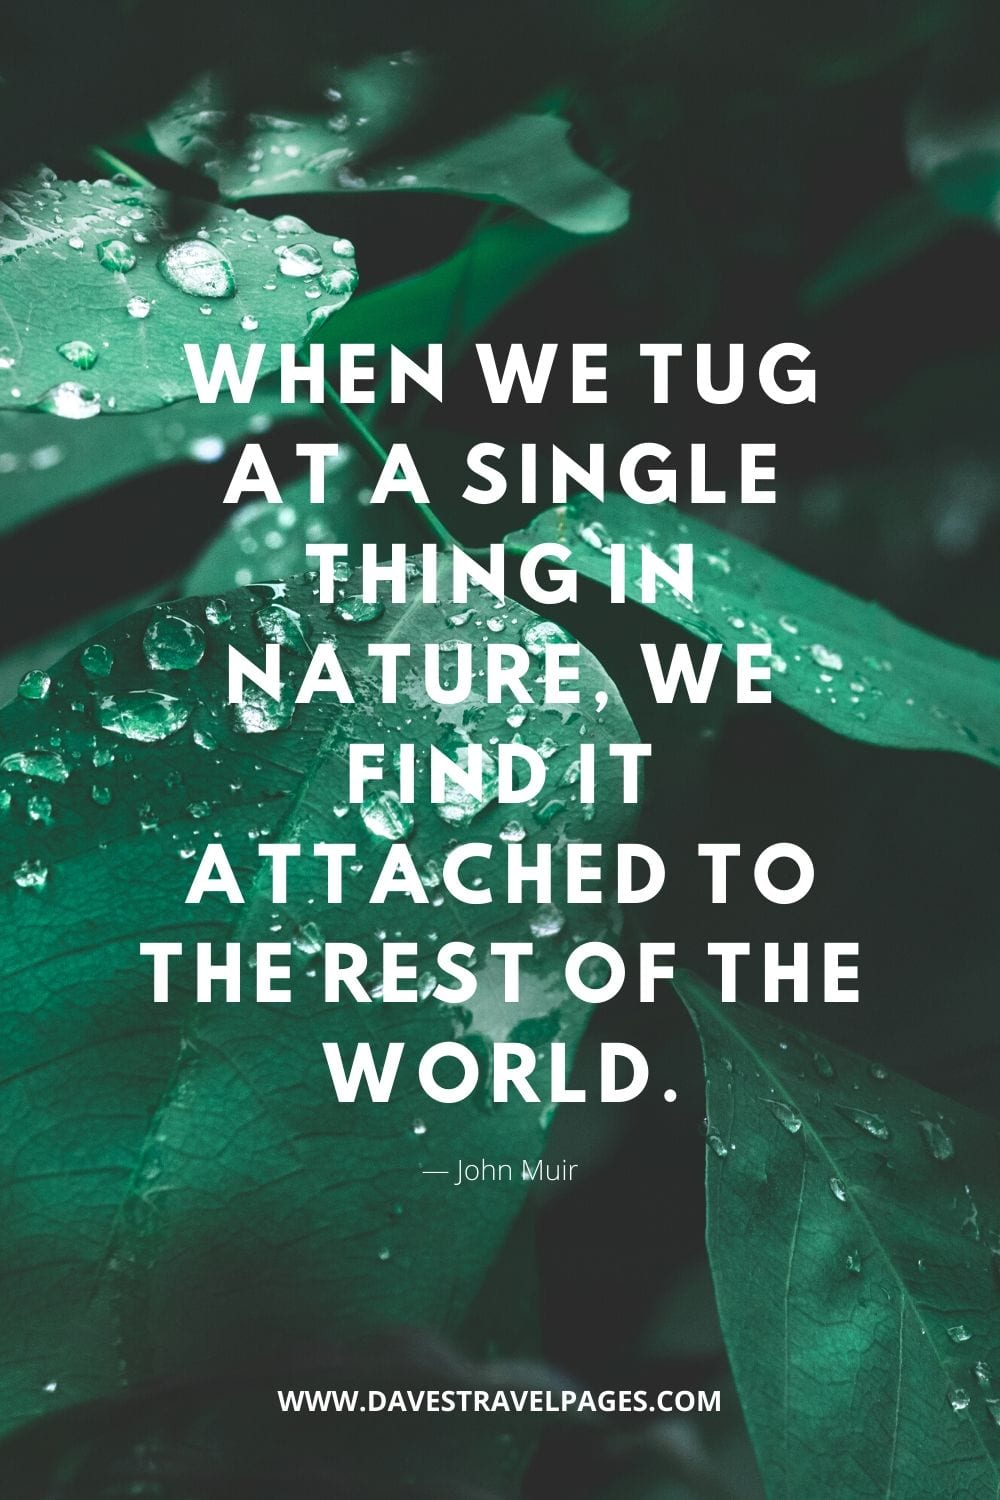 """Nature quote by John Muir: """"When we tug at a single thing in nature, we find it attached to the rest of the world."""""""